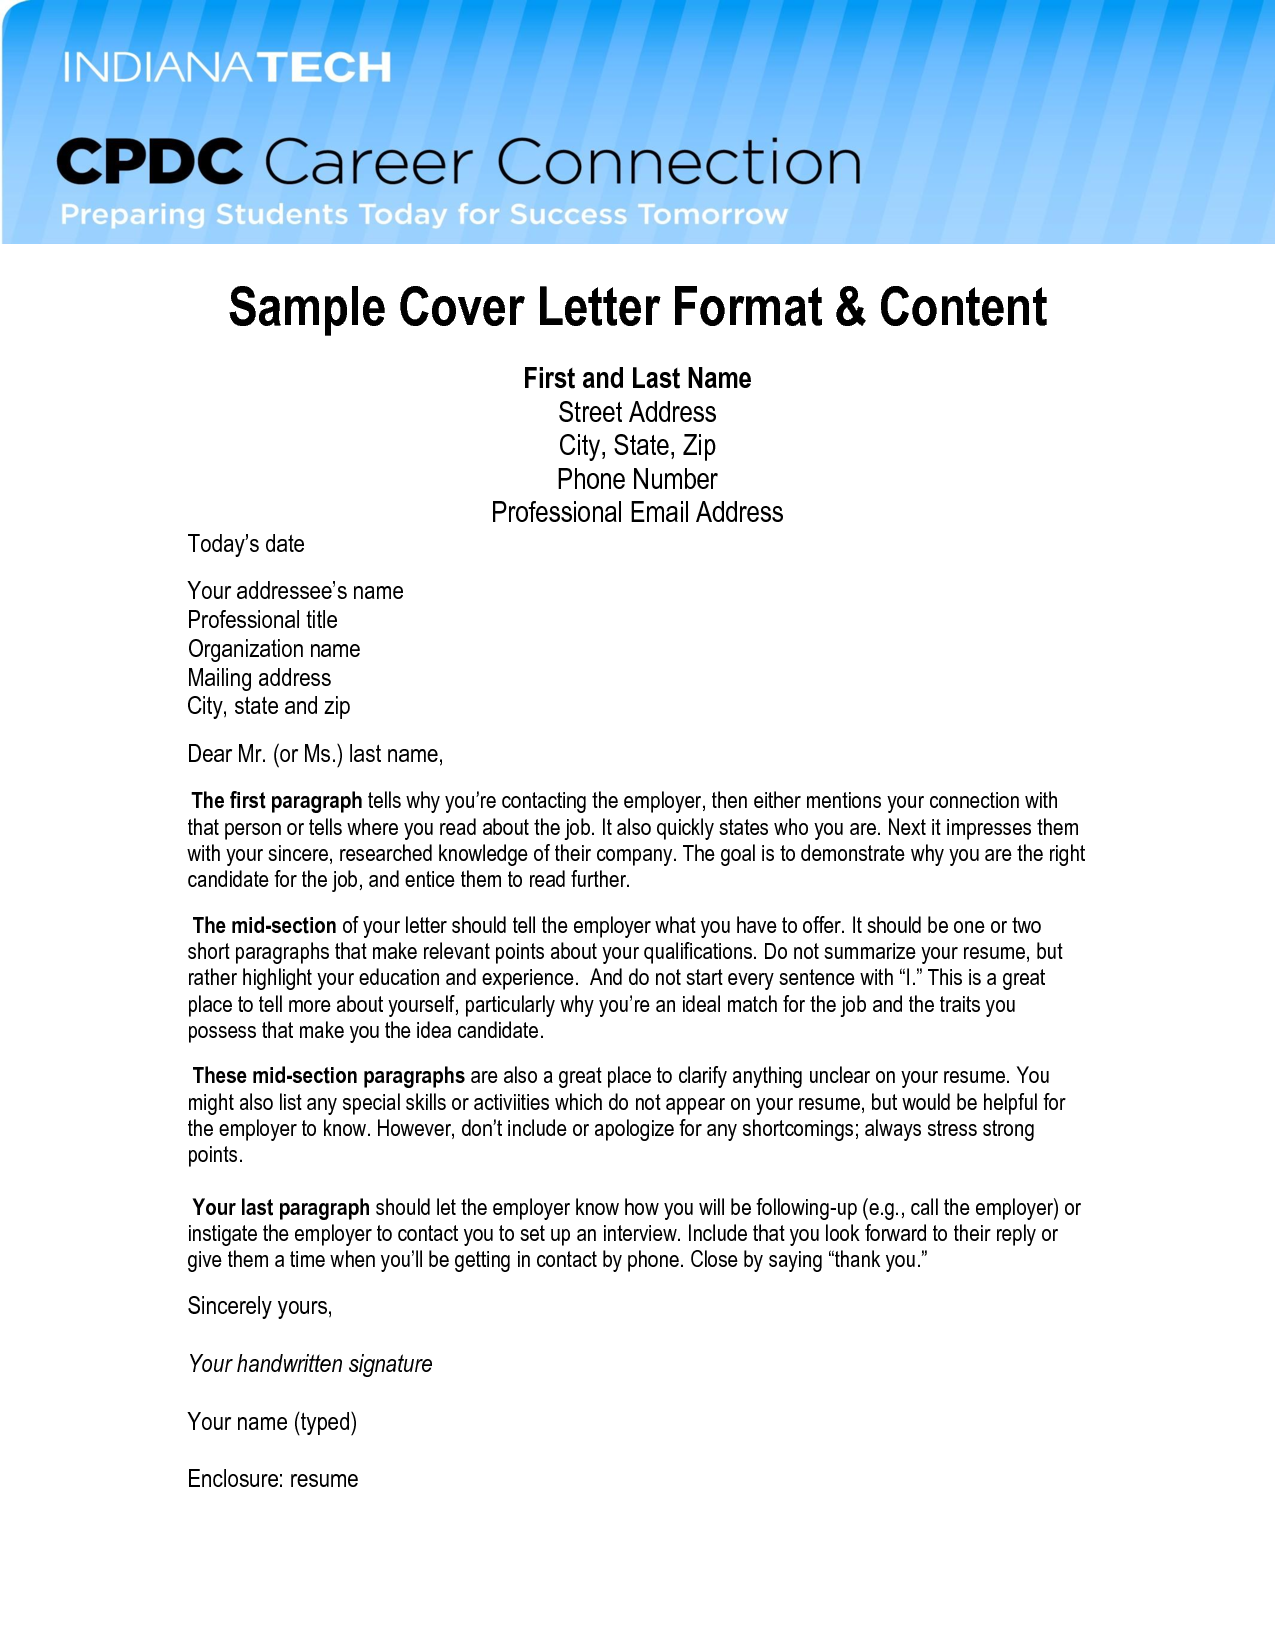 email cover letter format campaign very interested the top with formal business exampleofessional address